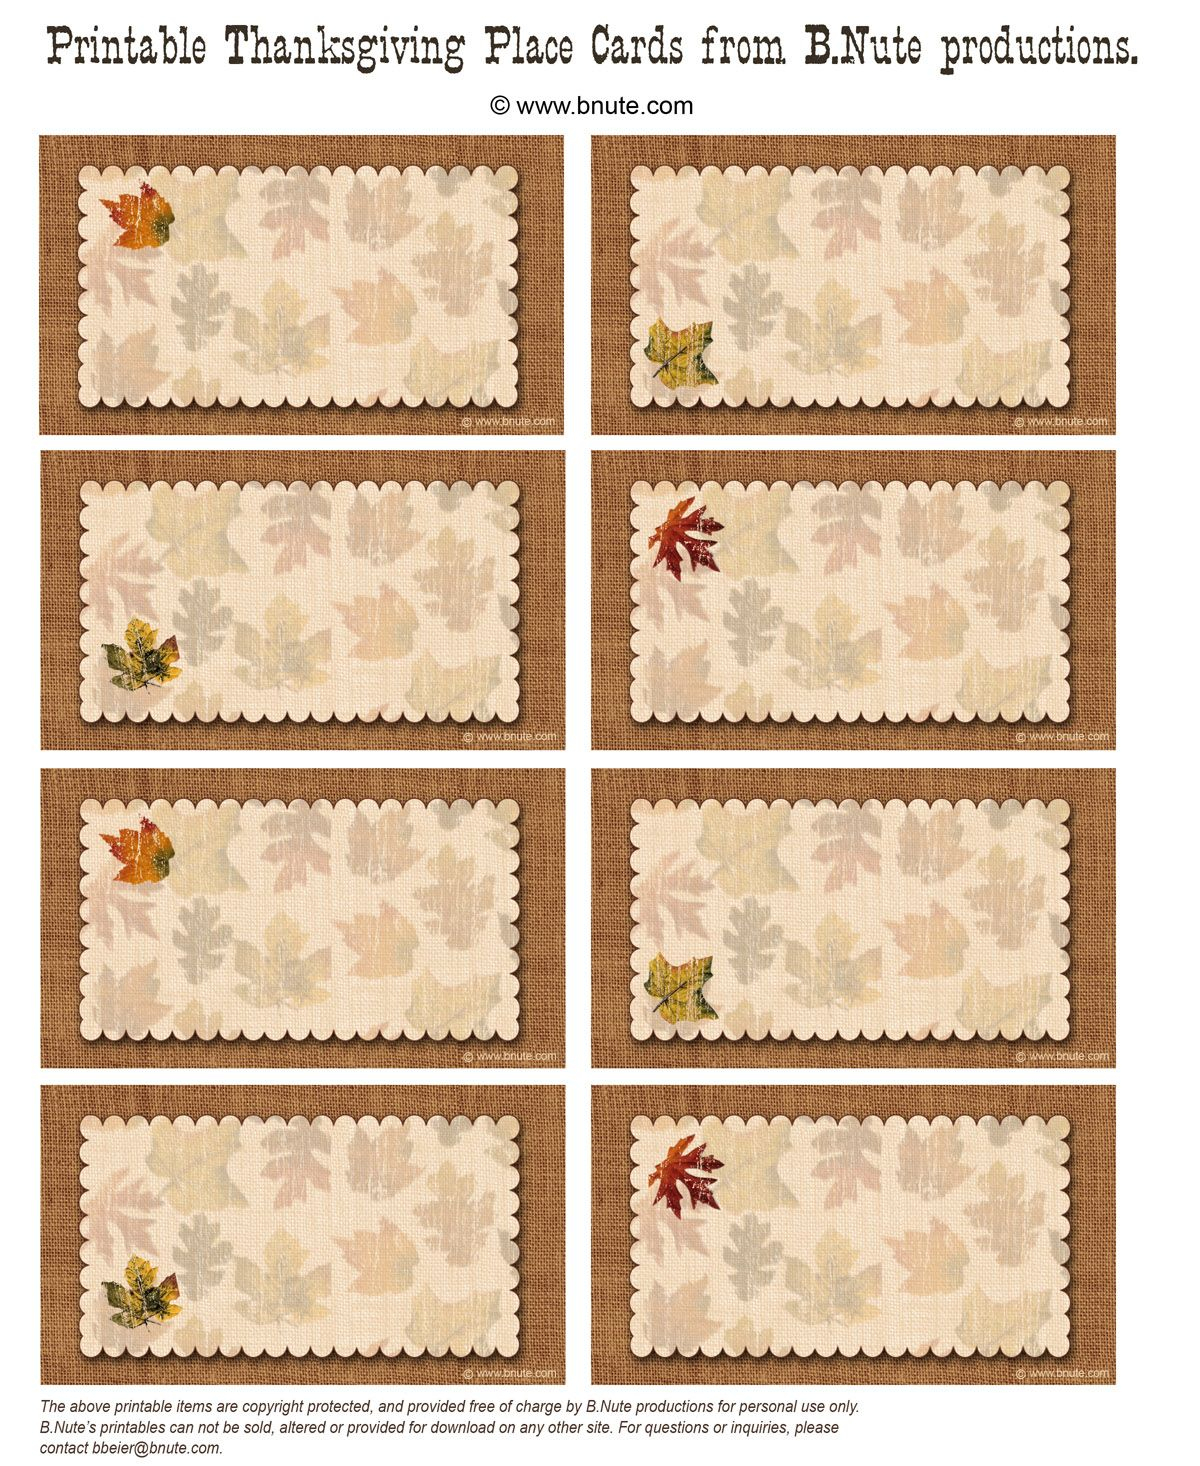 Bnute Productions: Free Printable Autumn Place Cards Perfect For - Free Printable Thanksgiving Place Cards To Color